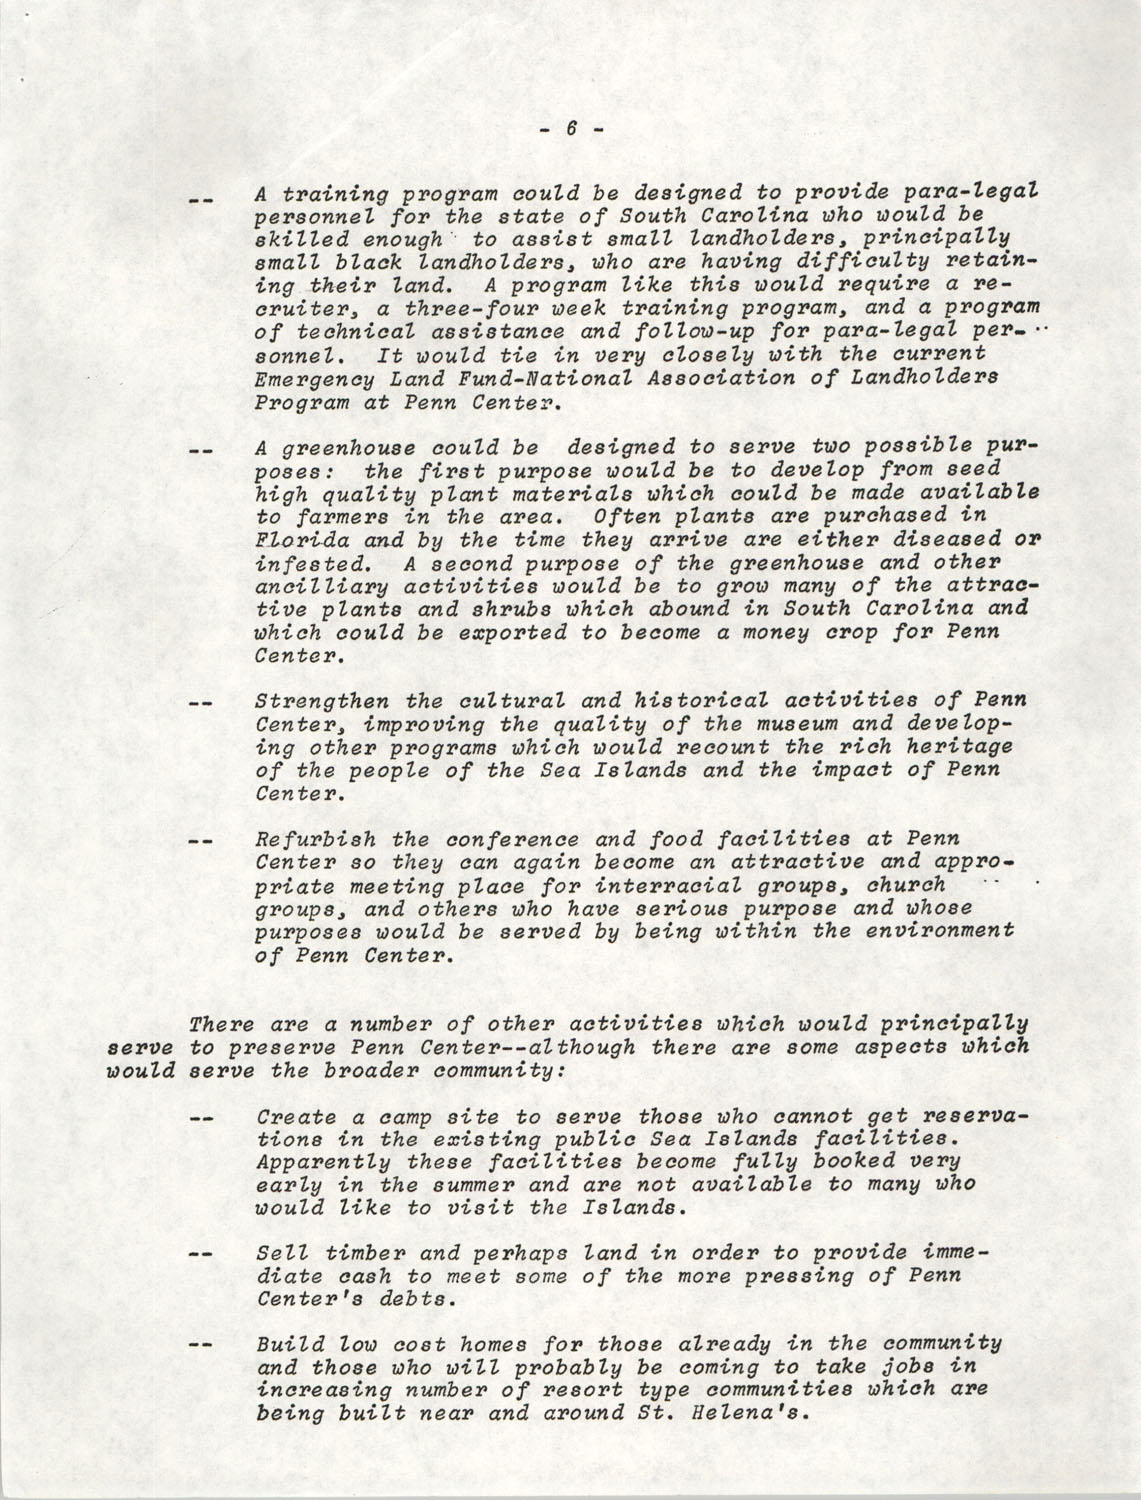 Planning and Management Assistance Project Report, Penn Community Services, April 1978, Page 6